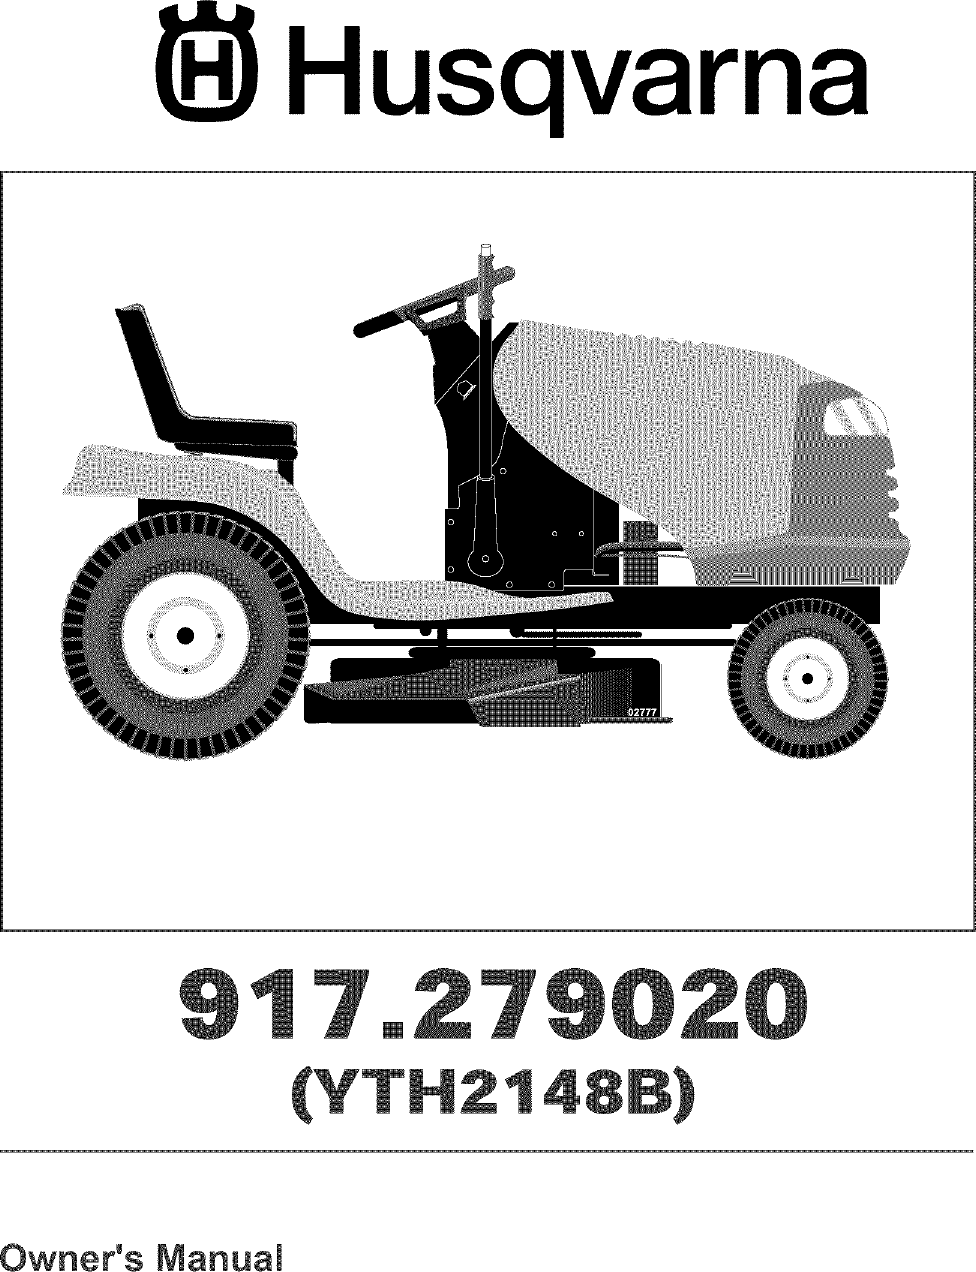 Husqvarna 917279020 User Manual Lawn Tractor Manuals And Guides L0406049 Have A Briggs Stration Tiller Four Horsepower I Trried